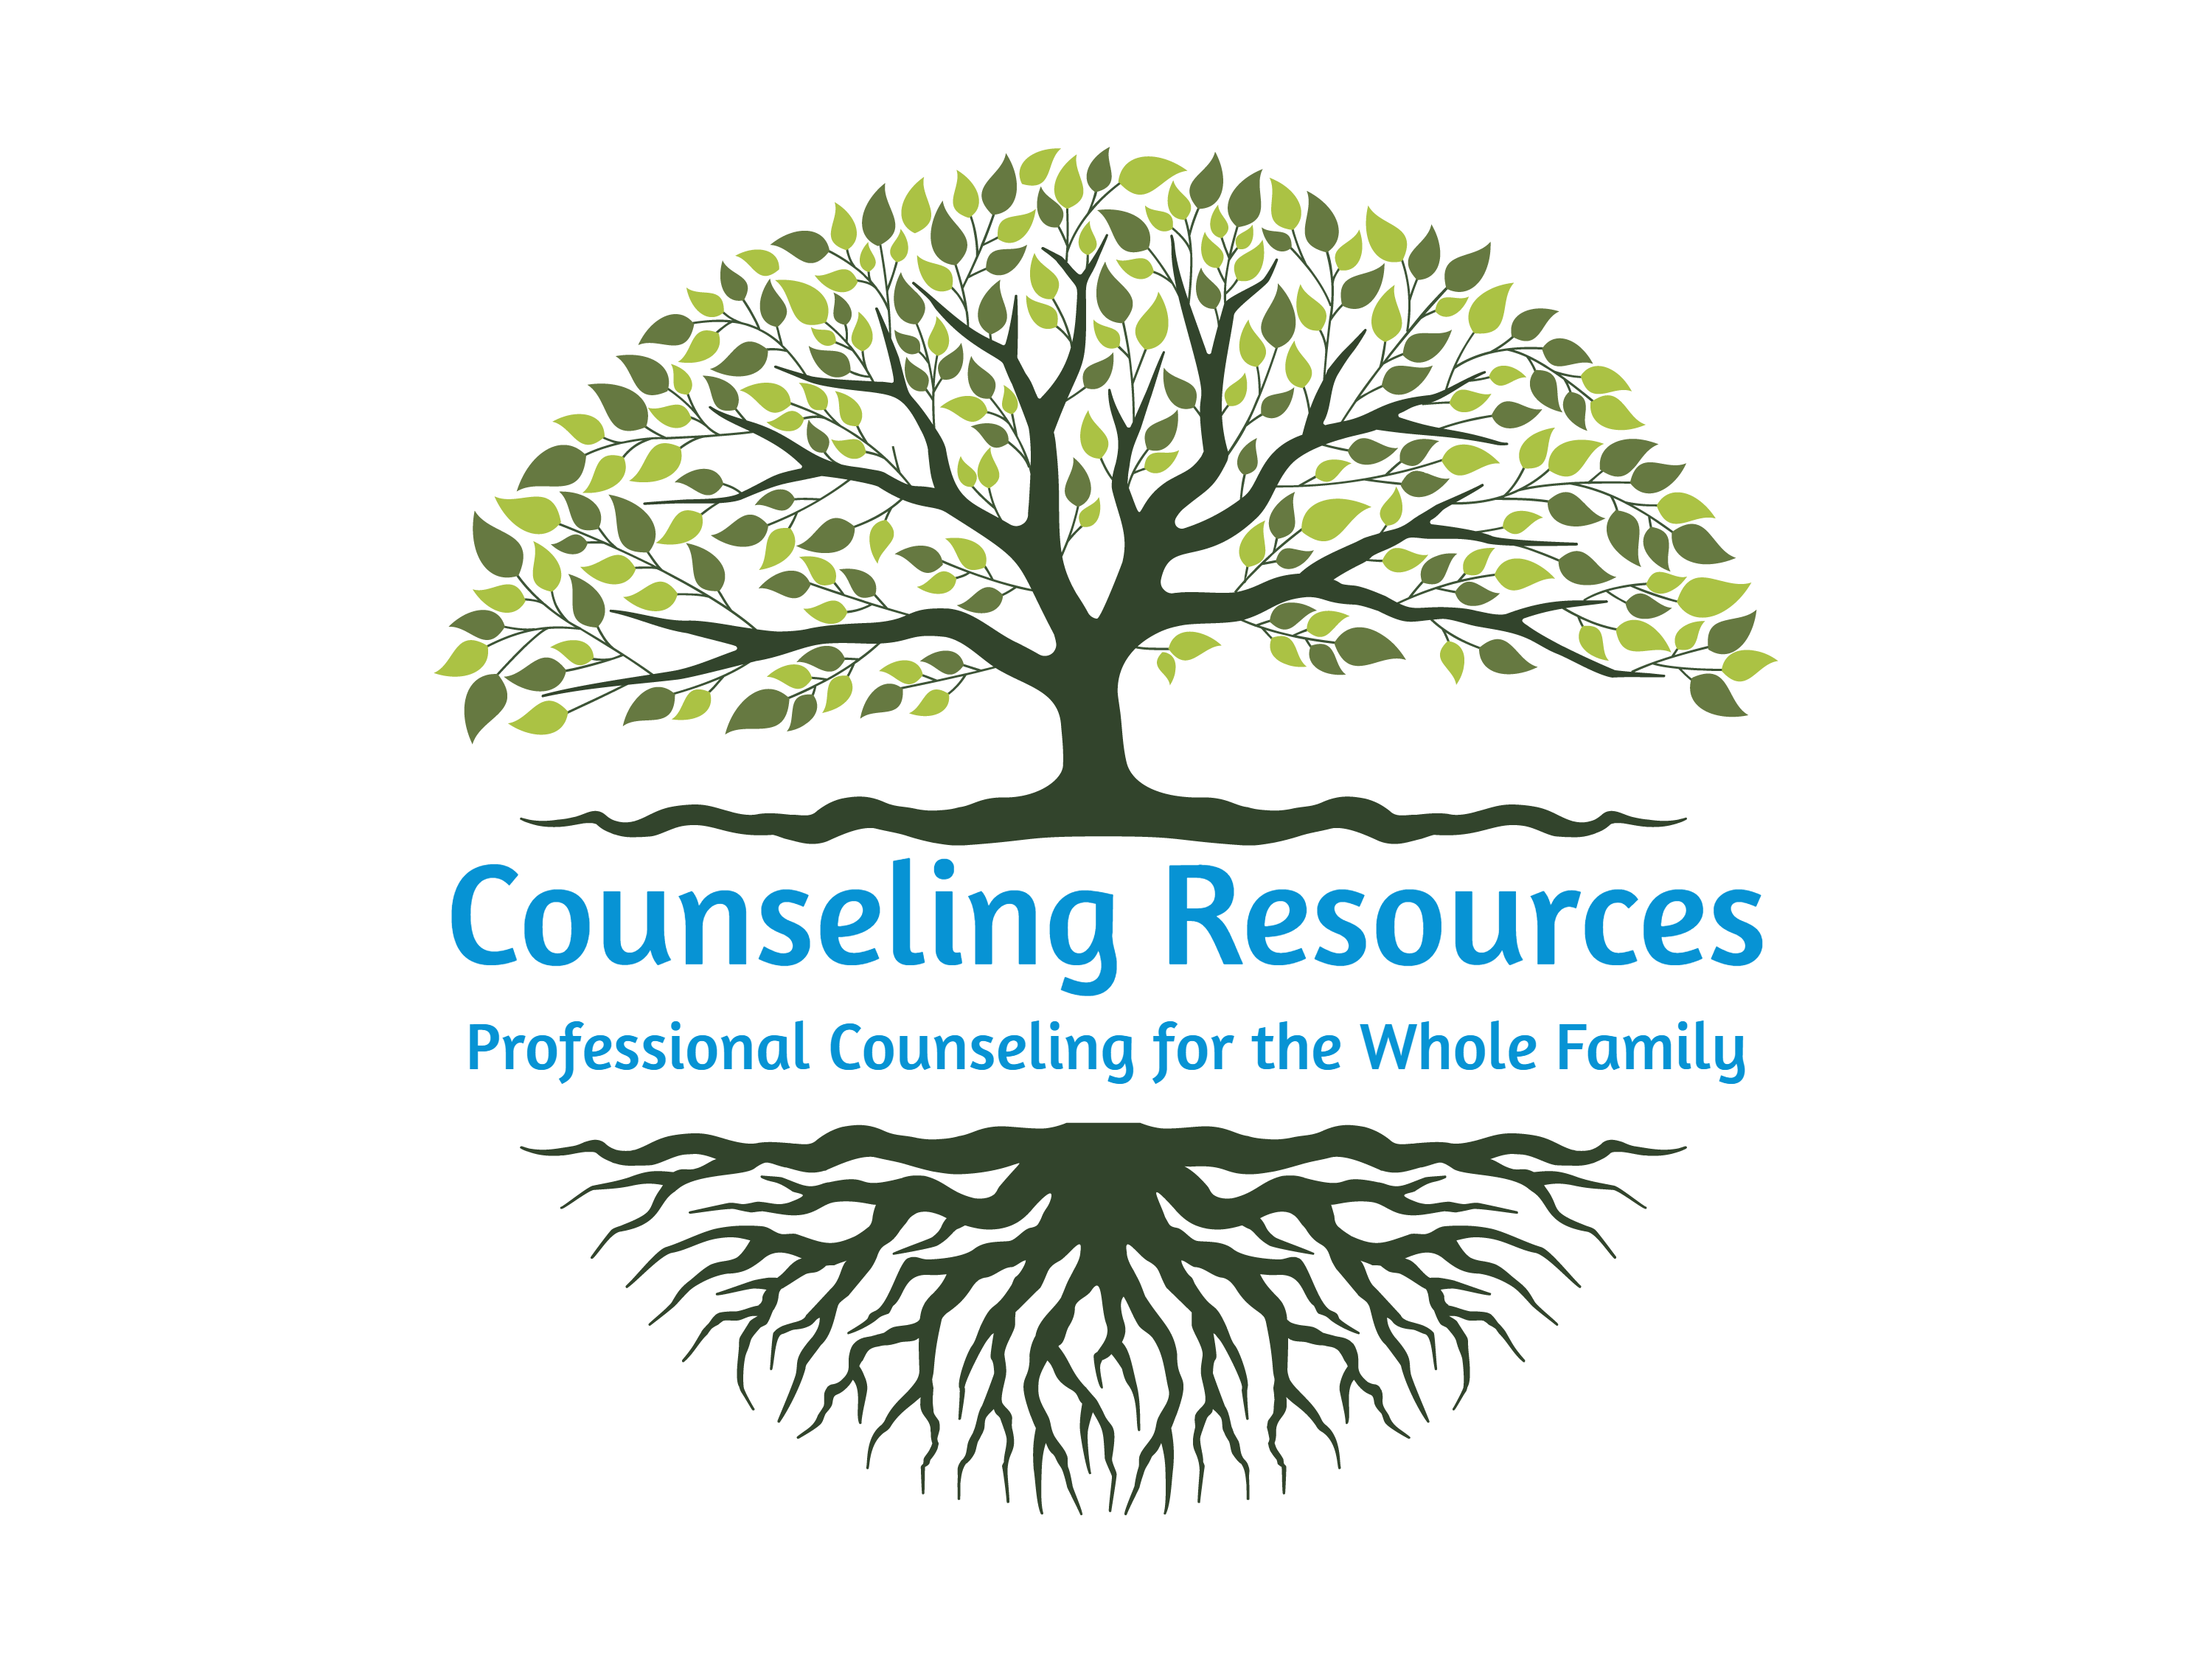 Counseling Resources